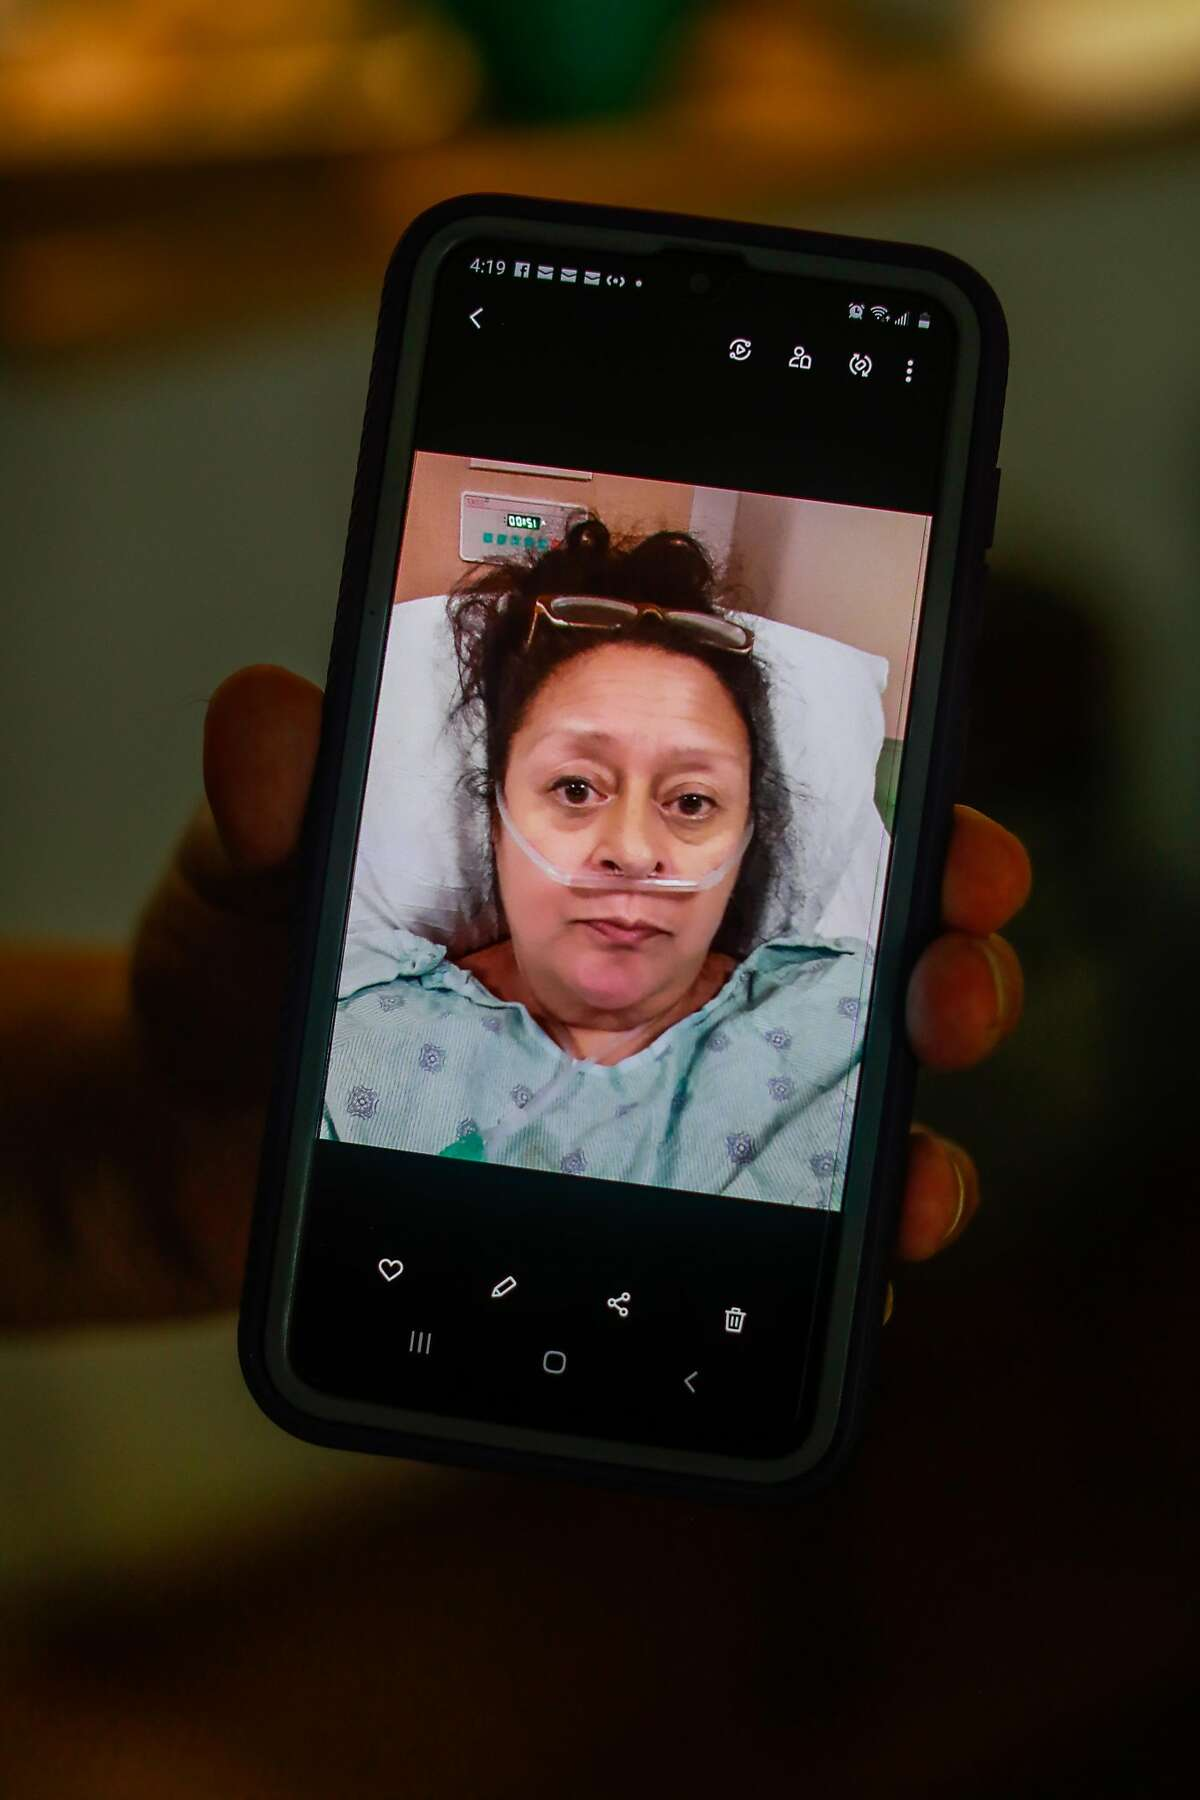 Charlotte Juarez shows a photo from her phone from when she was in the hospital on Thursday, Sept. 24, 2020 in Burlingame, California. Charlotte was in the hospital with the coronavirus in June and is still experiencing lingering effects including fatigue and heart palpitations.